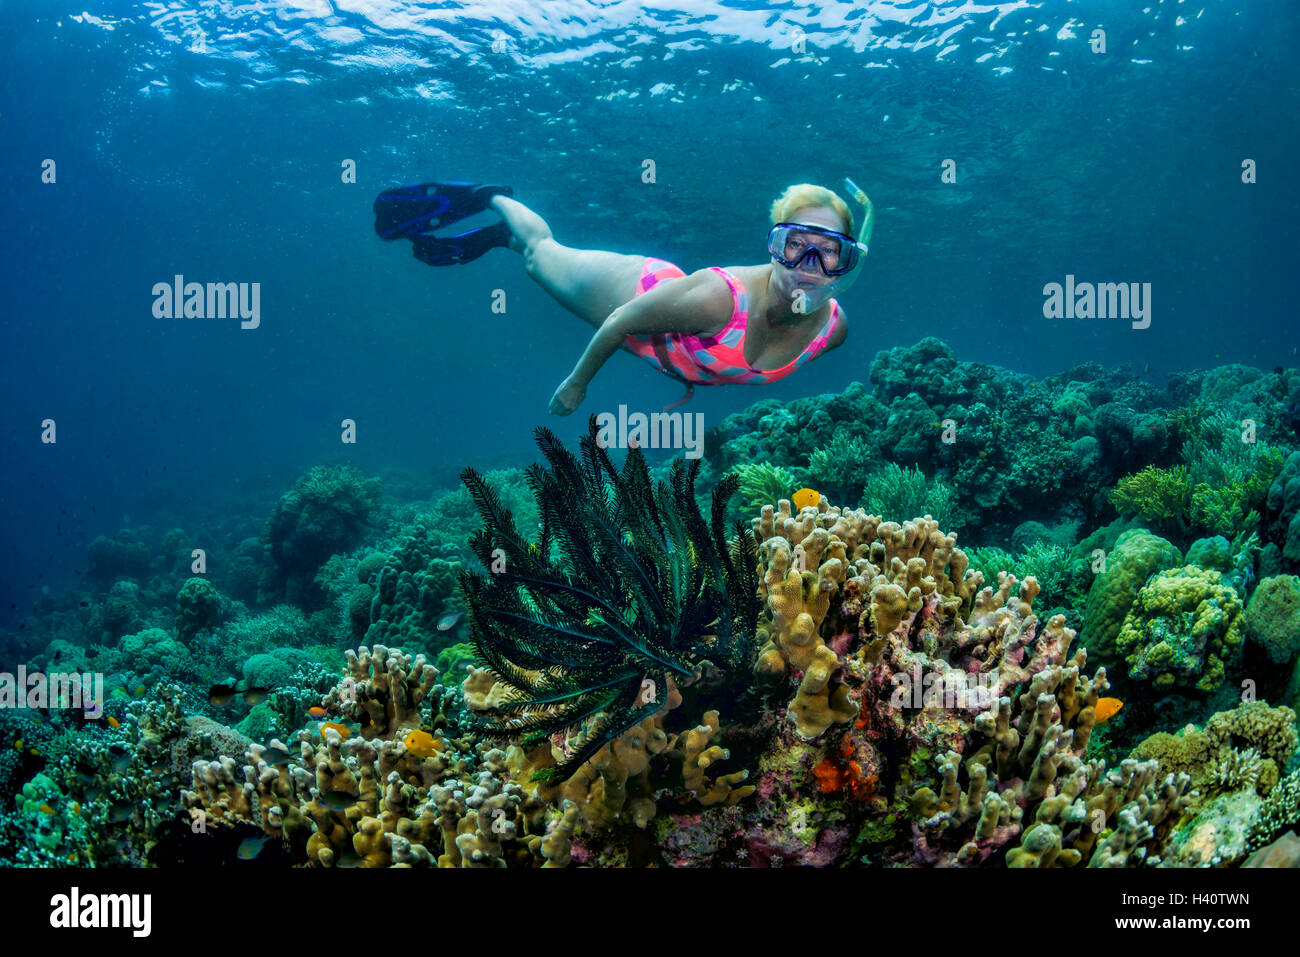 Femmina snorkel diver esplorare tropical Coral reef Immagini Stock